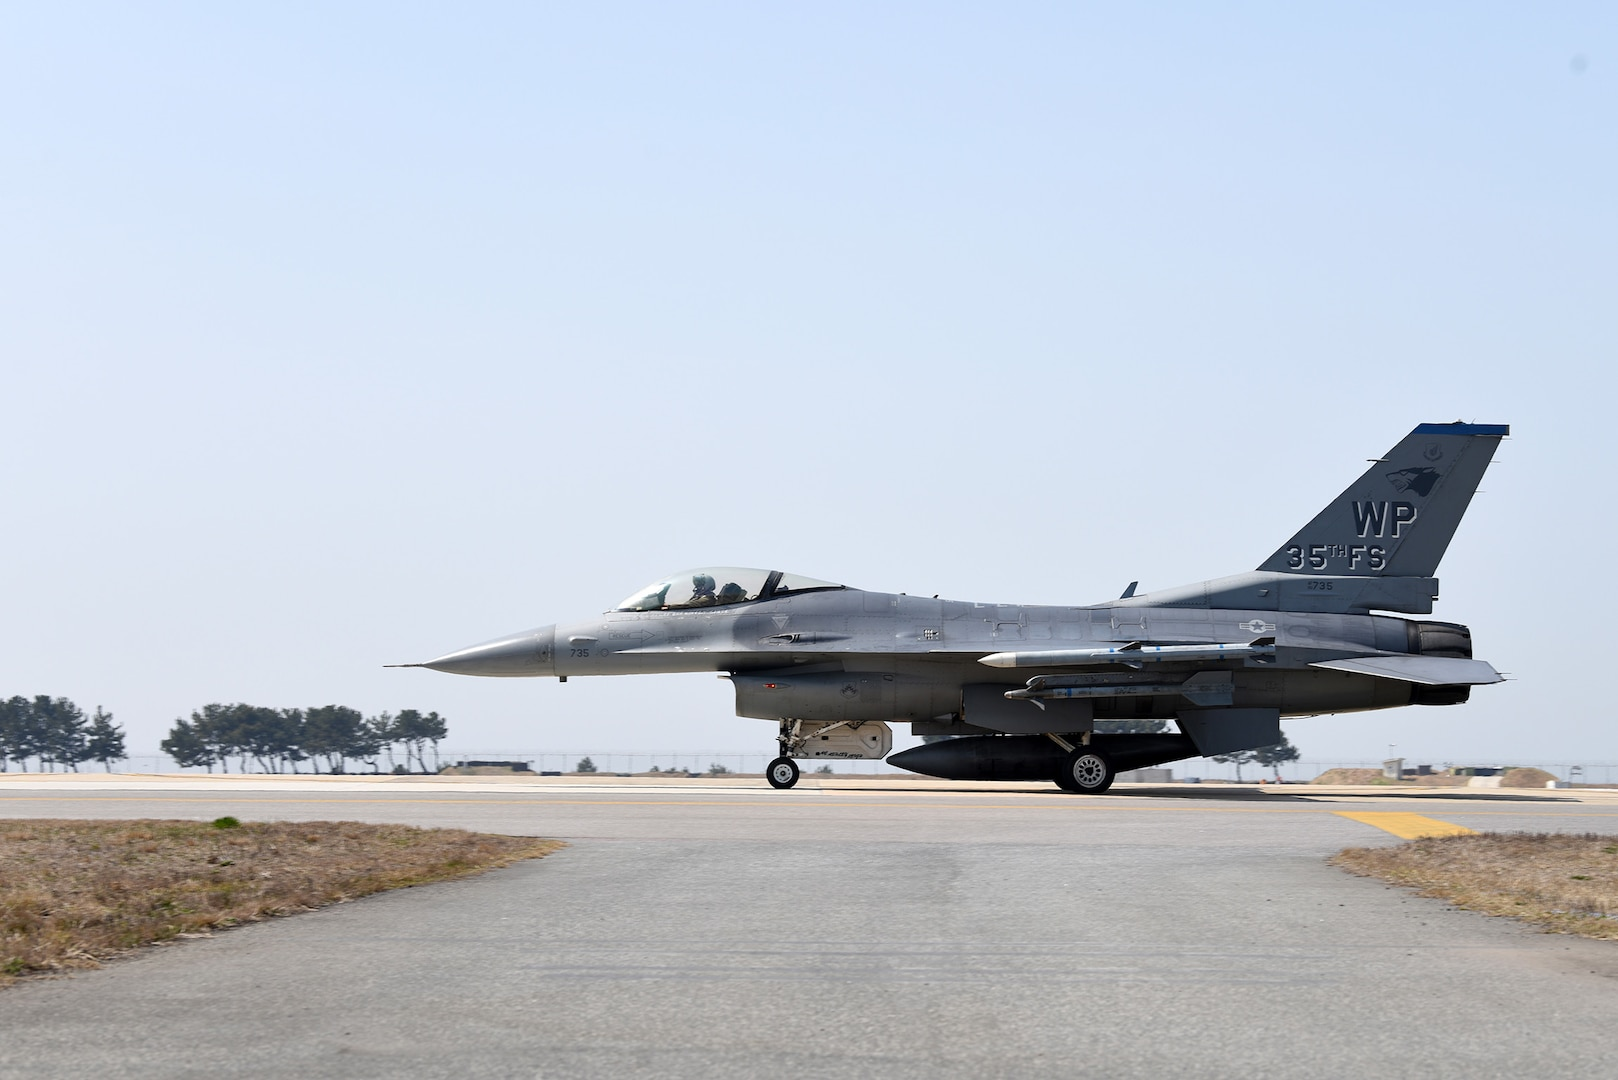 U.S. Air Force, Republic of Korea Conduct Joint Training